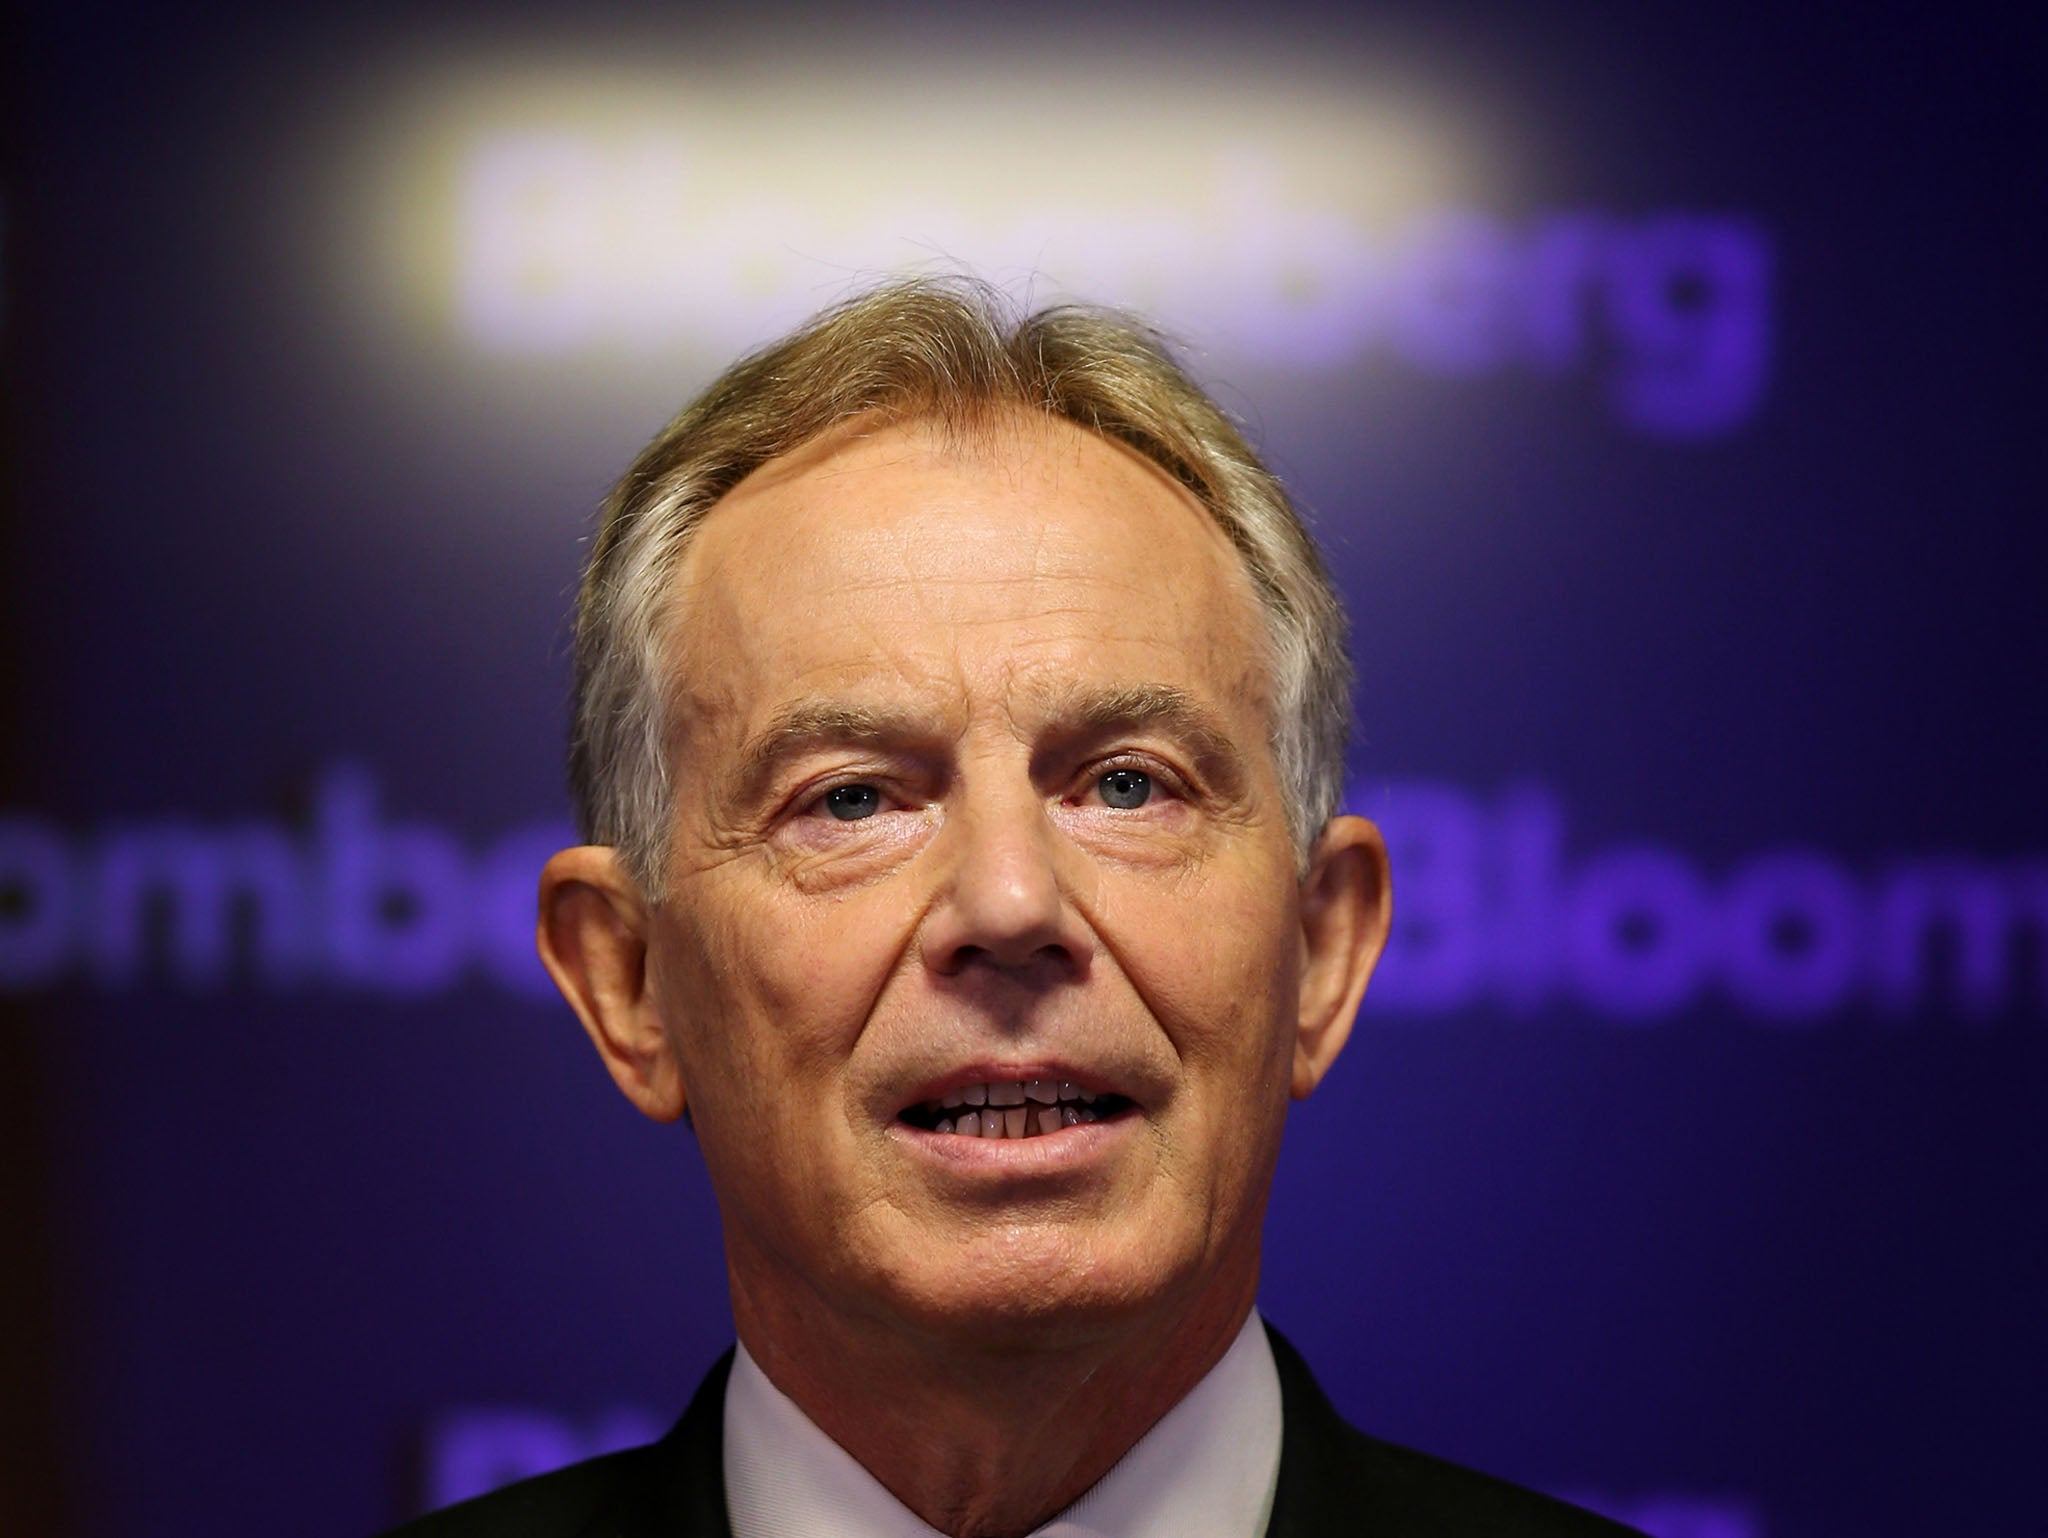 """blairs gay singles With the news that tony blair has just been named as one of the uk's top gay icons of the last 30 years by the gay times, you might be scratching your head after he was awarded """"philanthropist."""